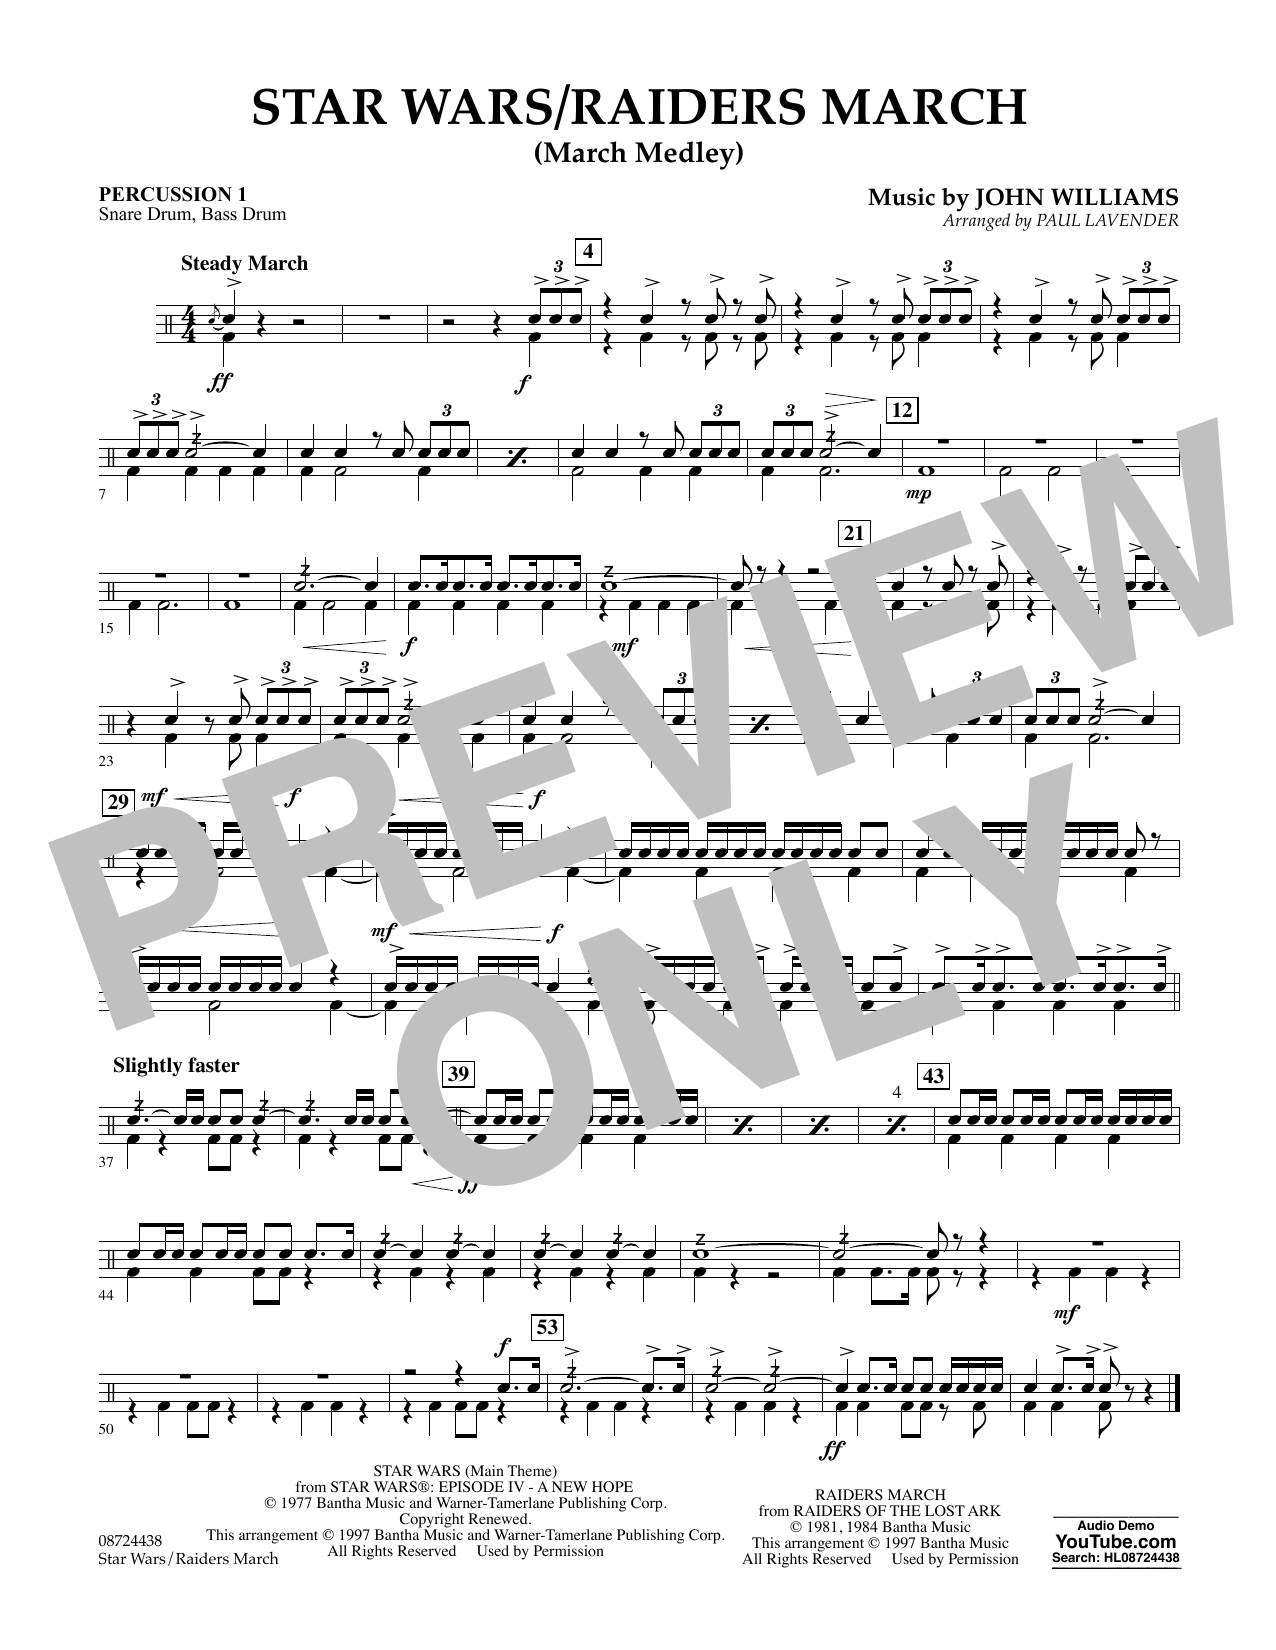 Star Wars/Raiders March - Percussion 1 Sheet Music